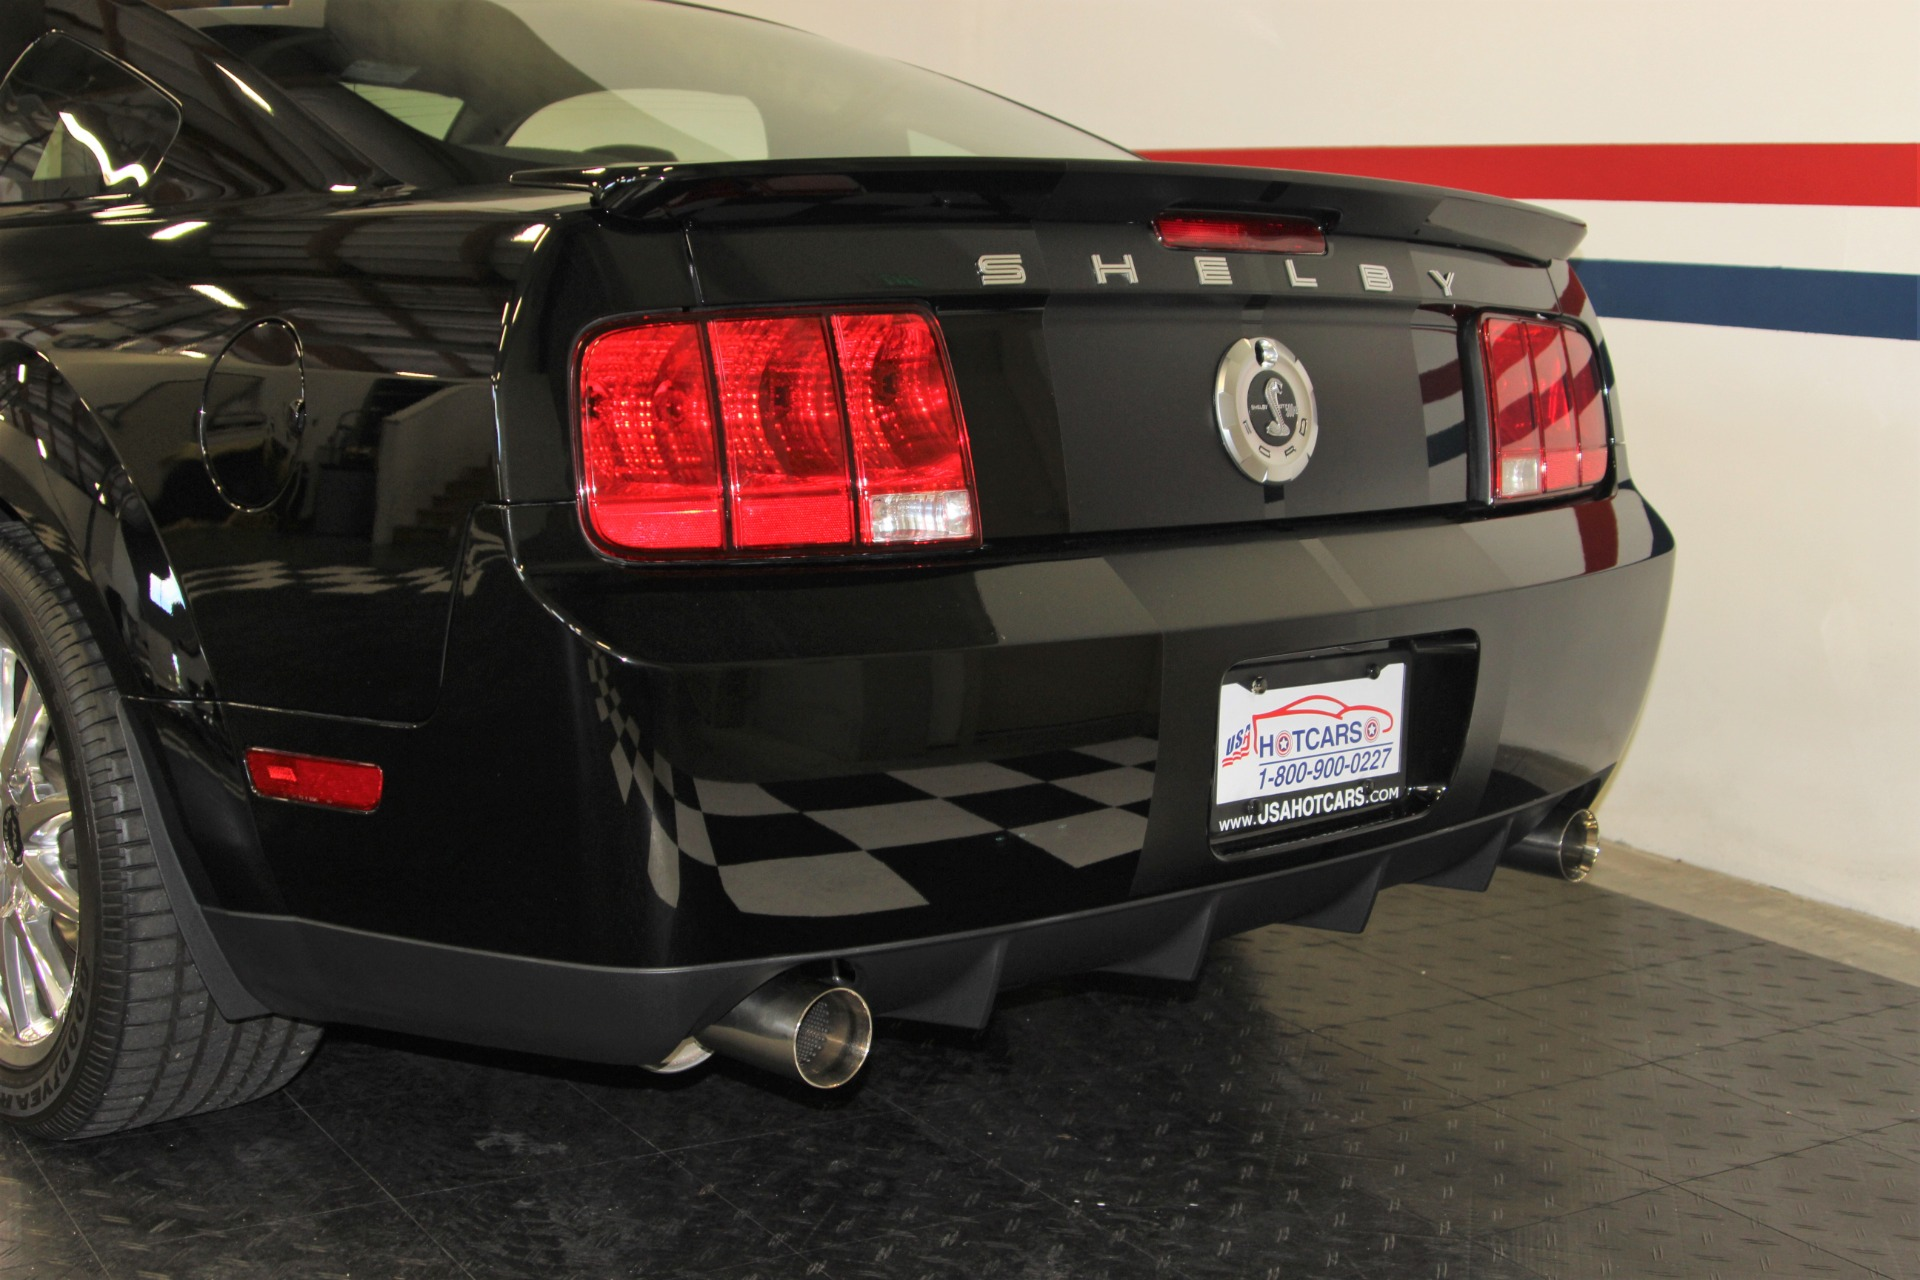 2009 Ford Shelby GT500 10